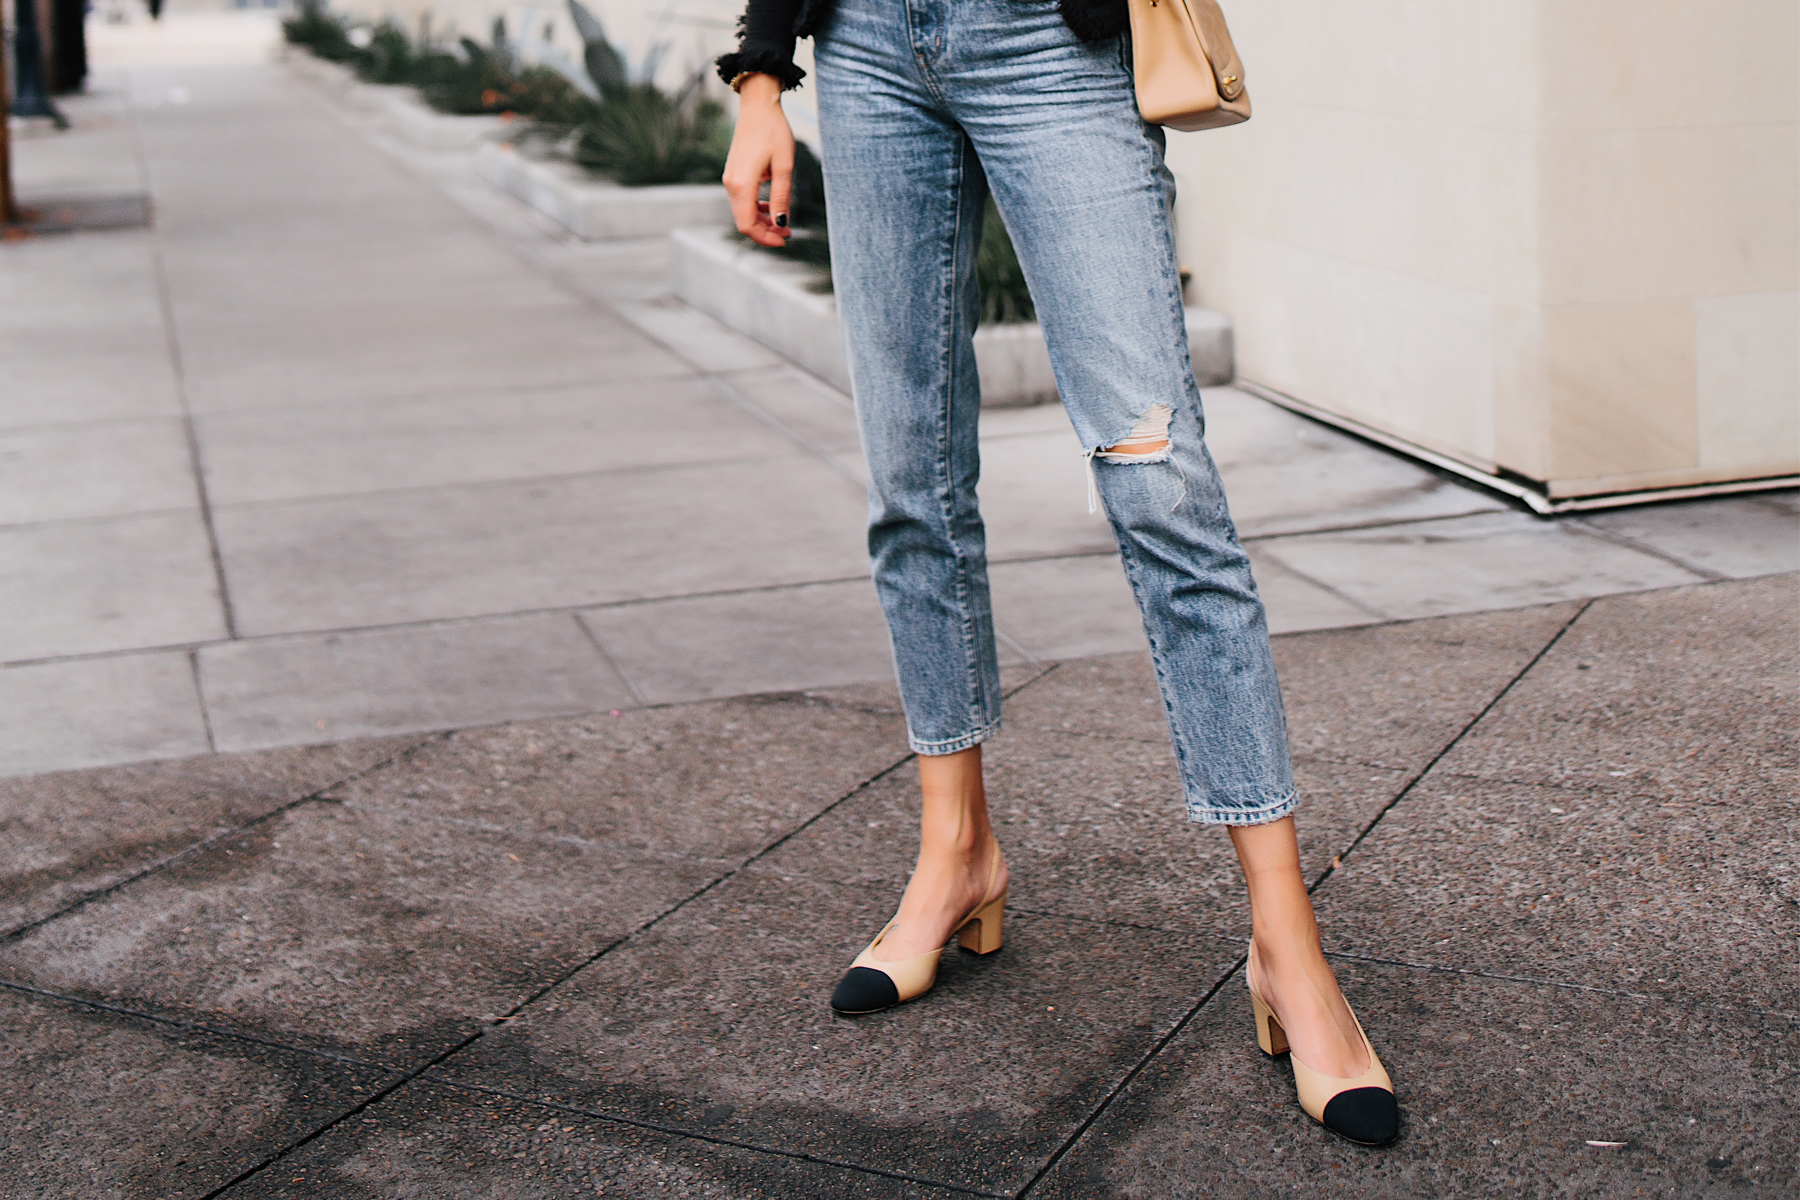 Woman Wearing Relaxed Ripped Jeans Chanel Slingback Shoes Fashion Jackson San Diego Fashion Blogger Street Style